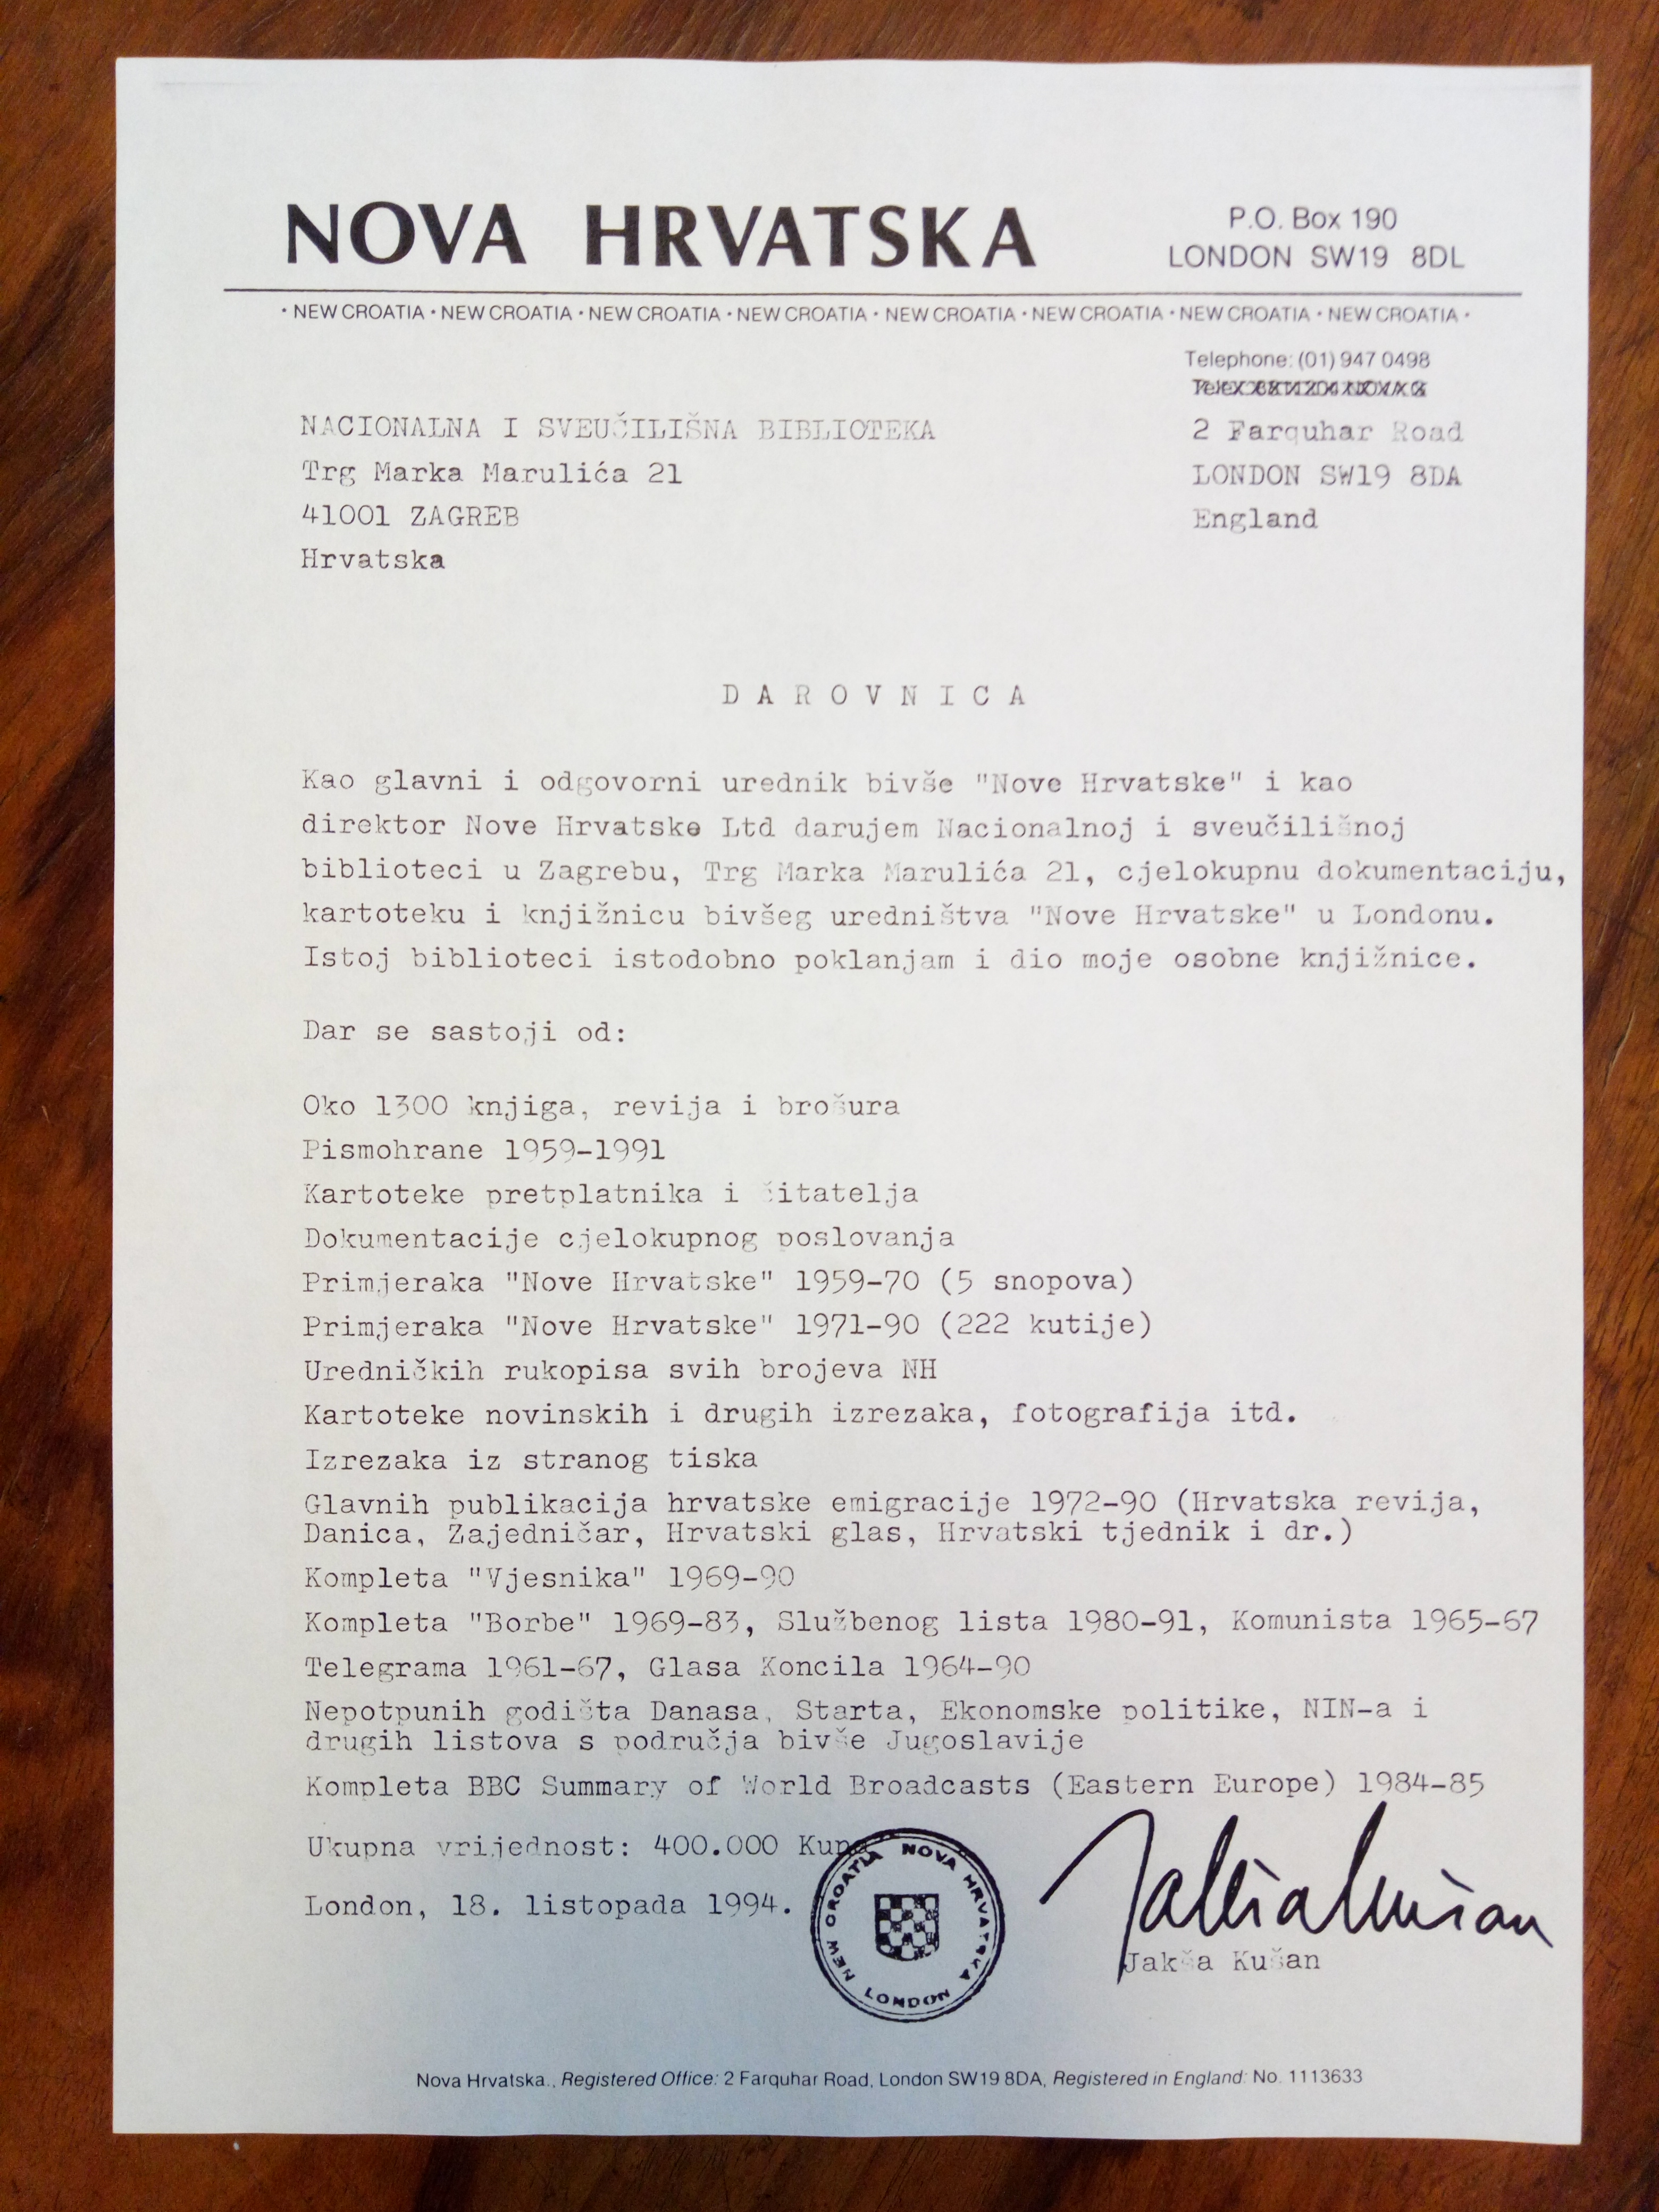 Donation agreement between Jakša Kušan and National and University Library (October 18, 1994)